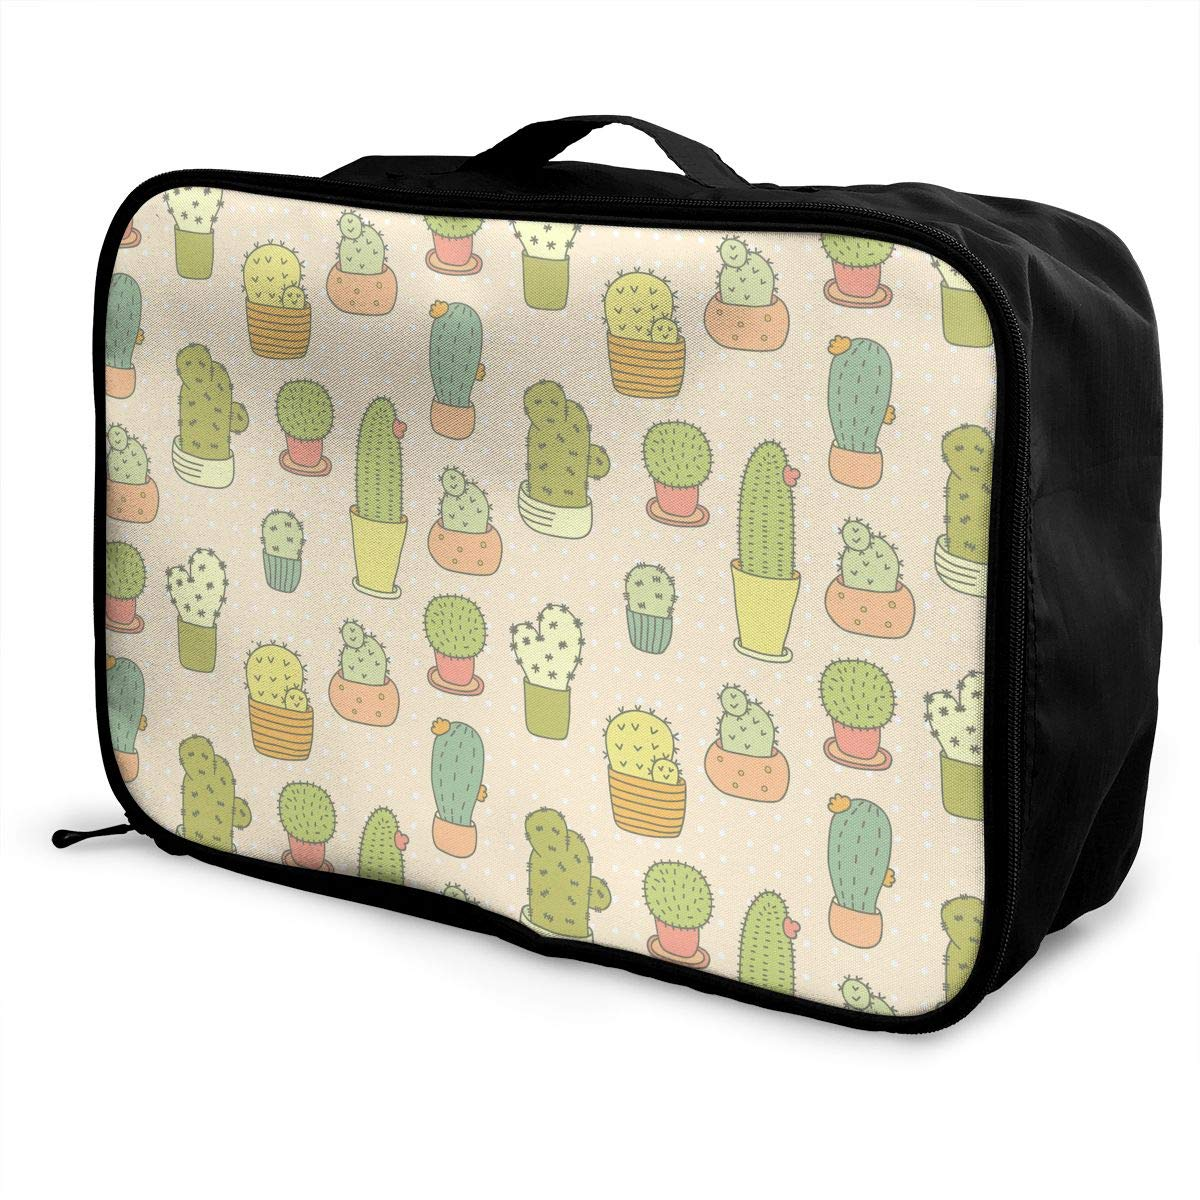 Travel Luggage Duffle Bag Lightweight Portable Handbag Cactus Pattern Large Capacity Waterproof Foldable Storage Tote